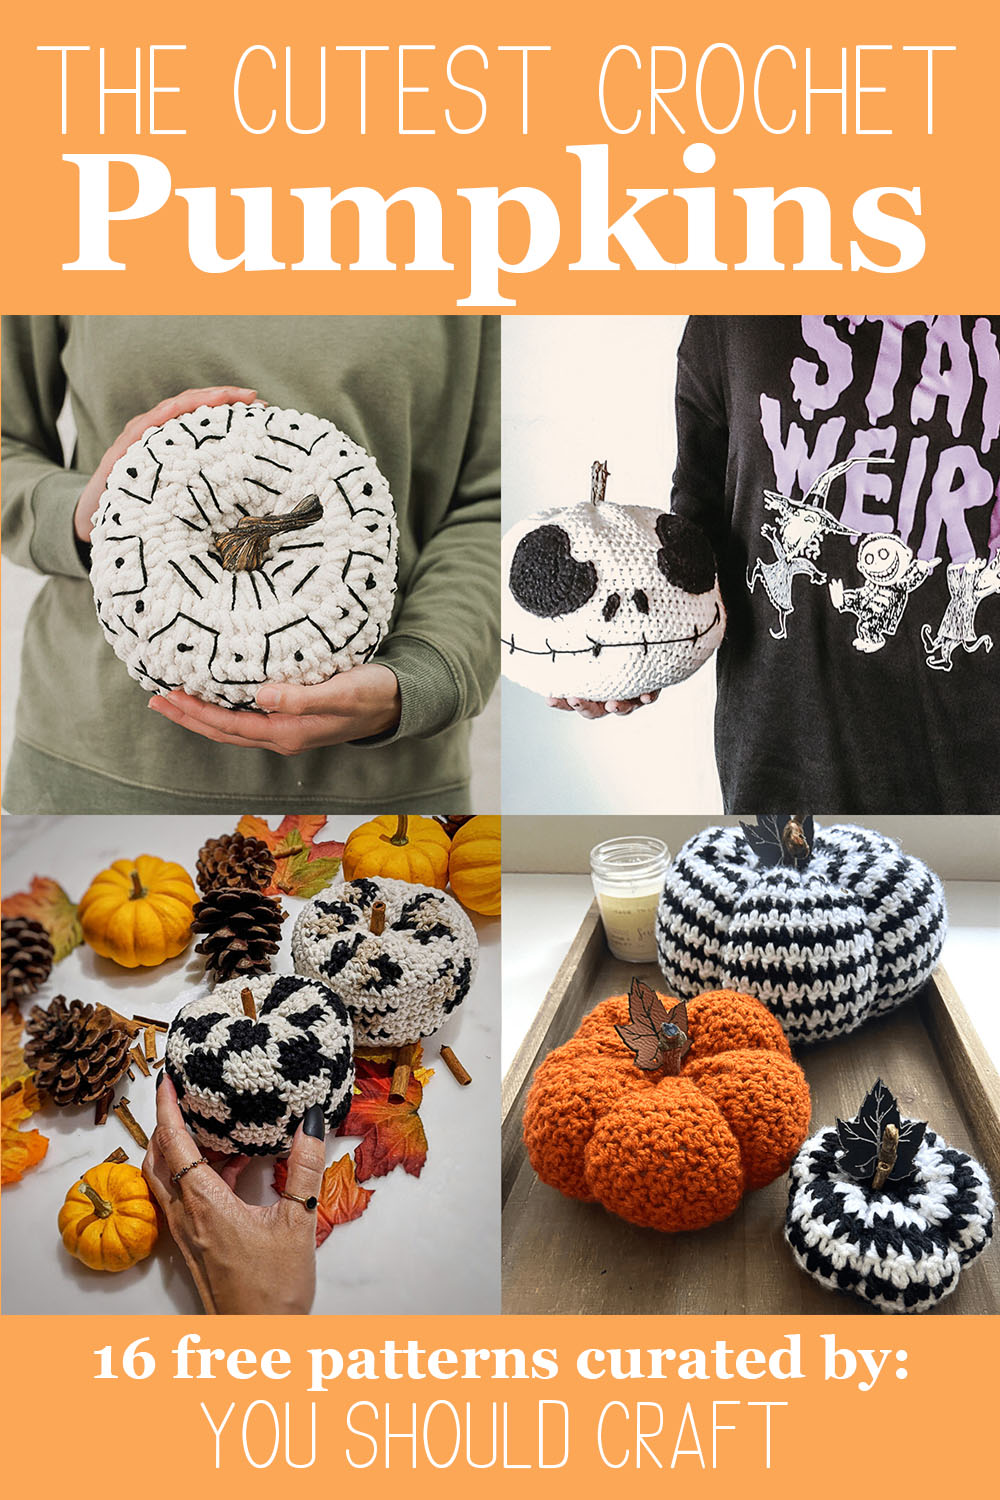 collage of images of crochet pumpkins on an orange background with white text